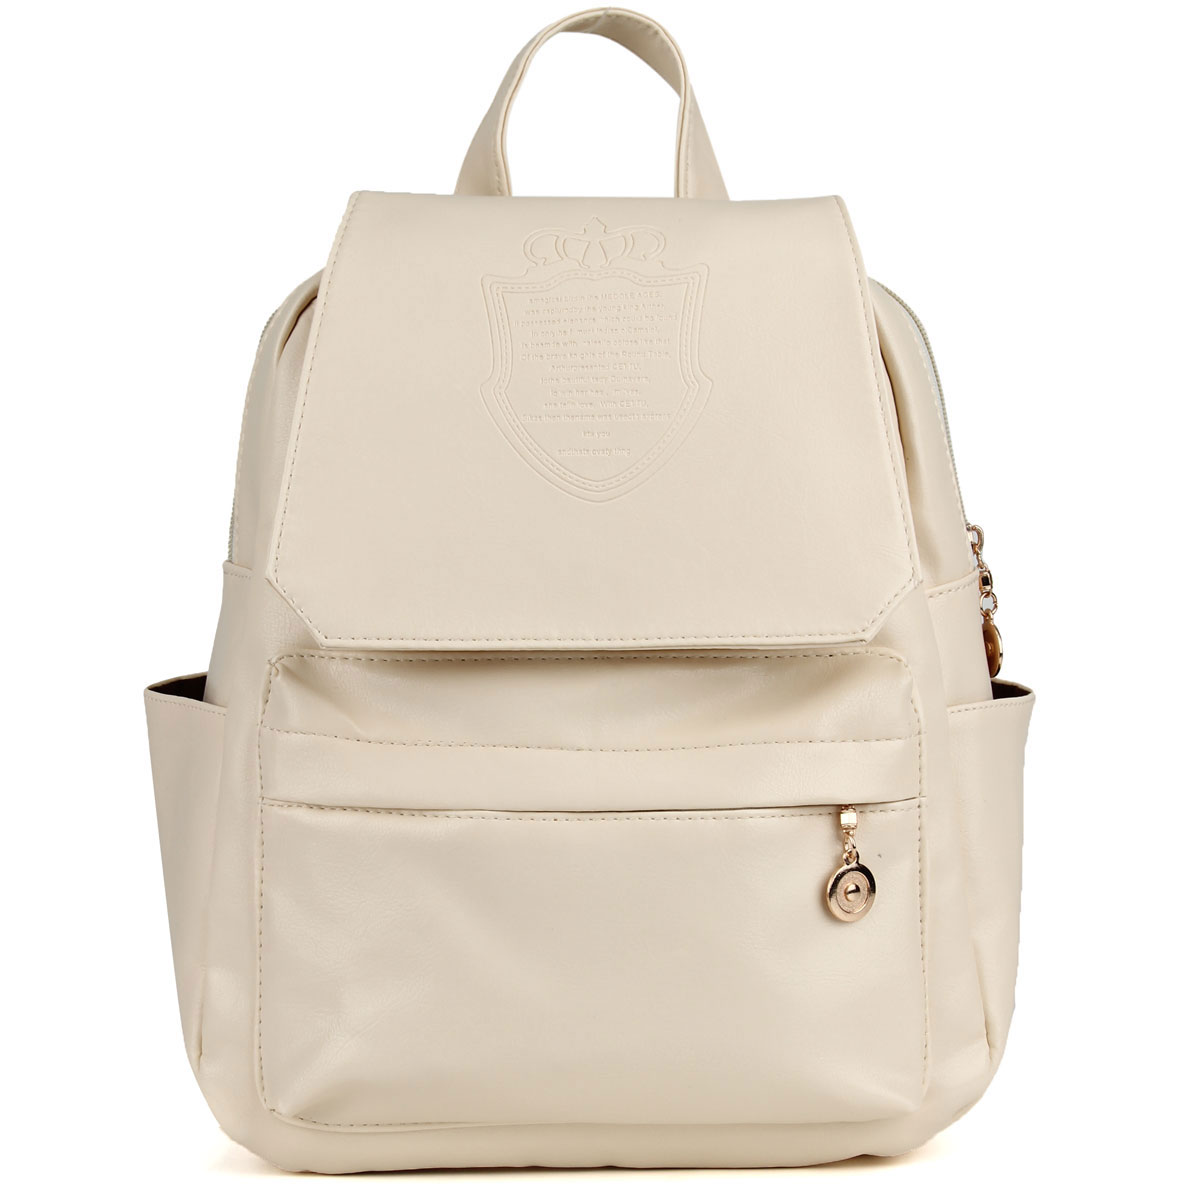 Find great deals on eBay for girls school satchel. Shop with confidence.